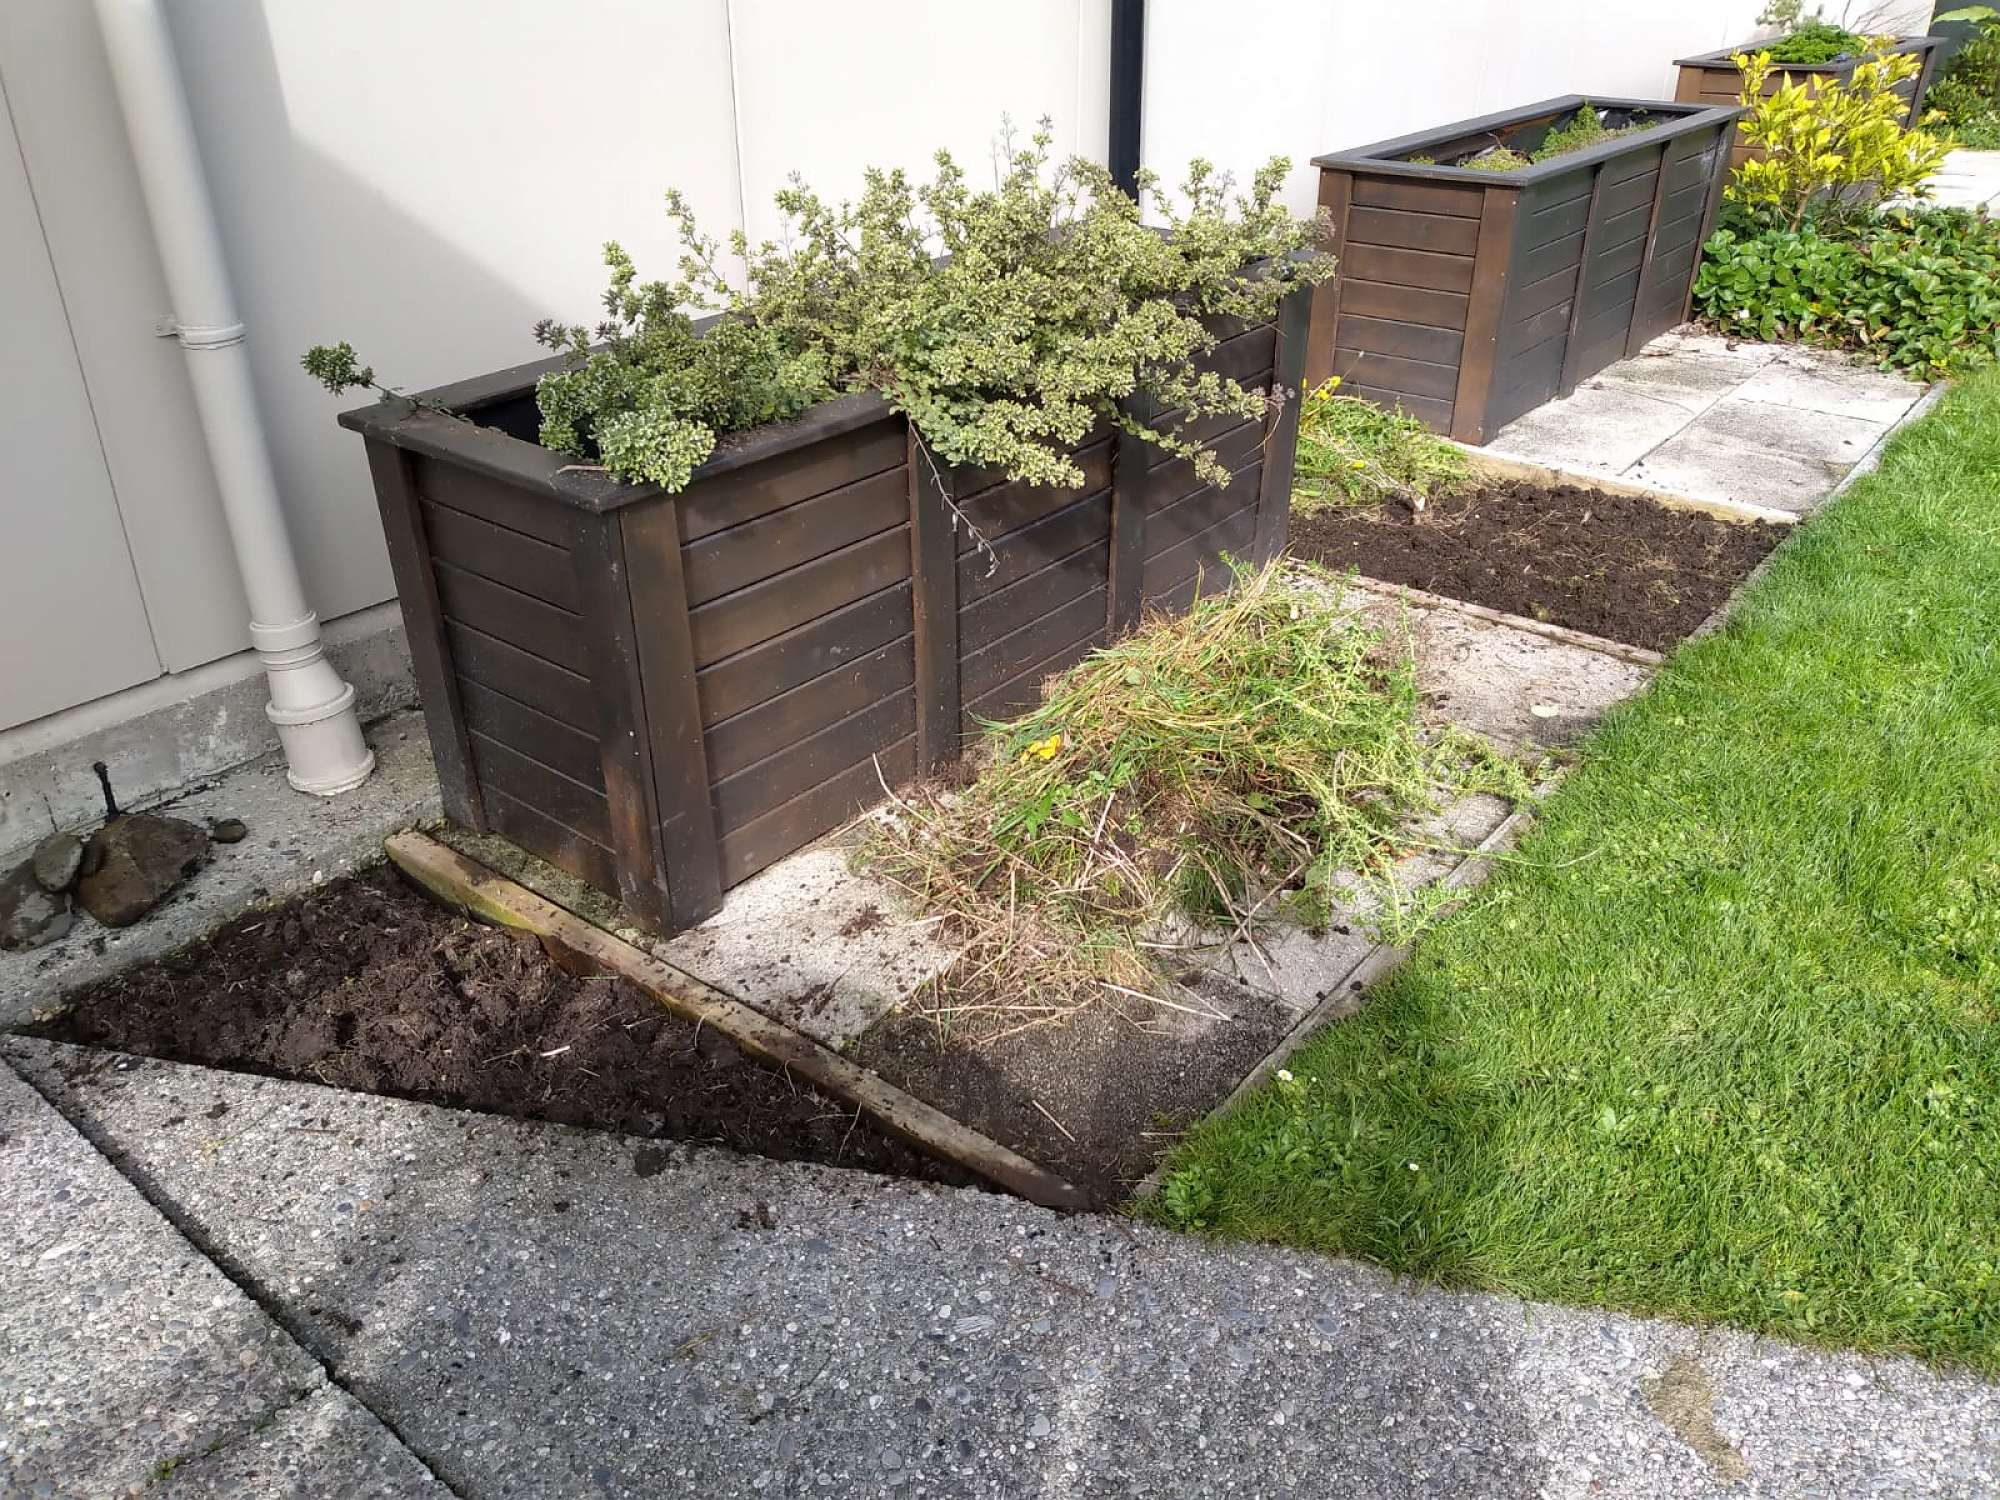 Herb Gardens after the makeover